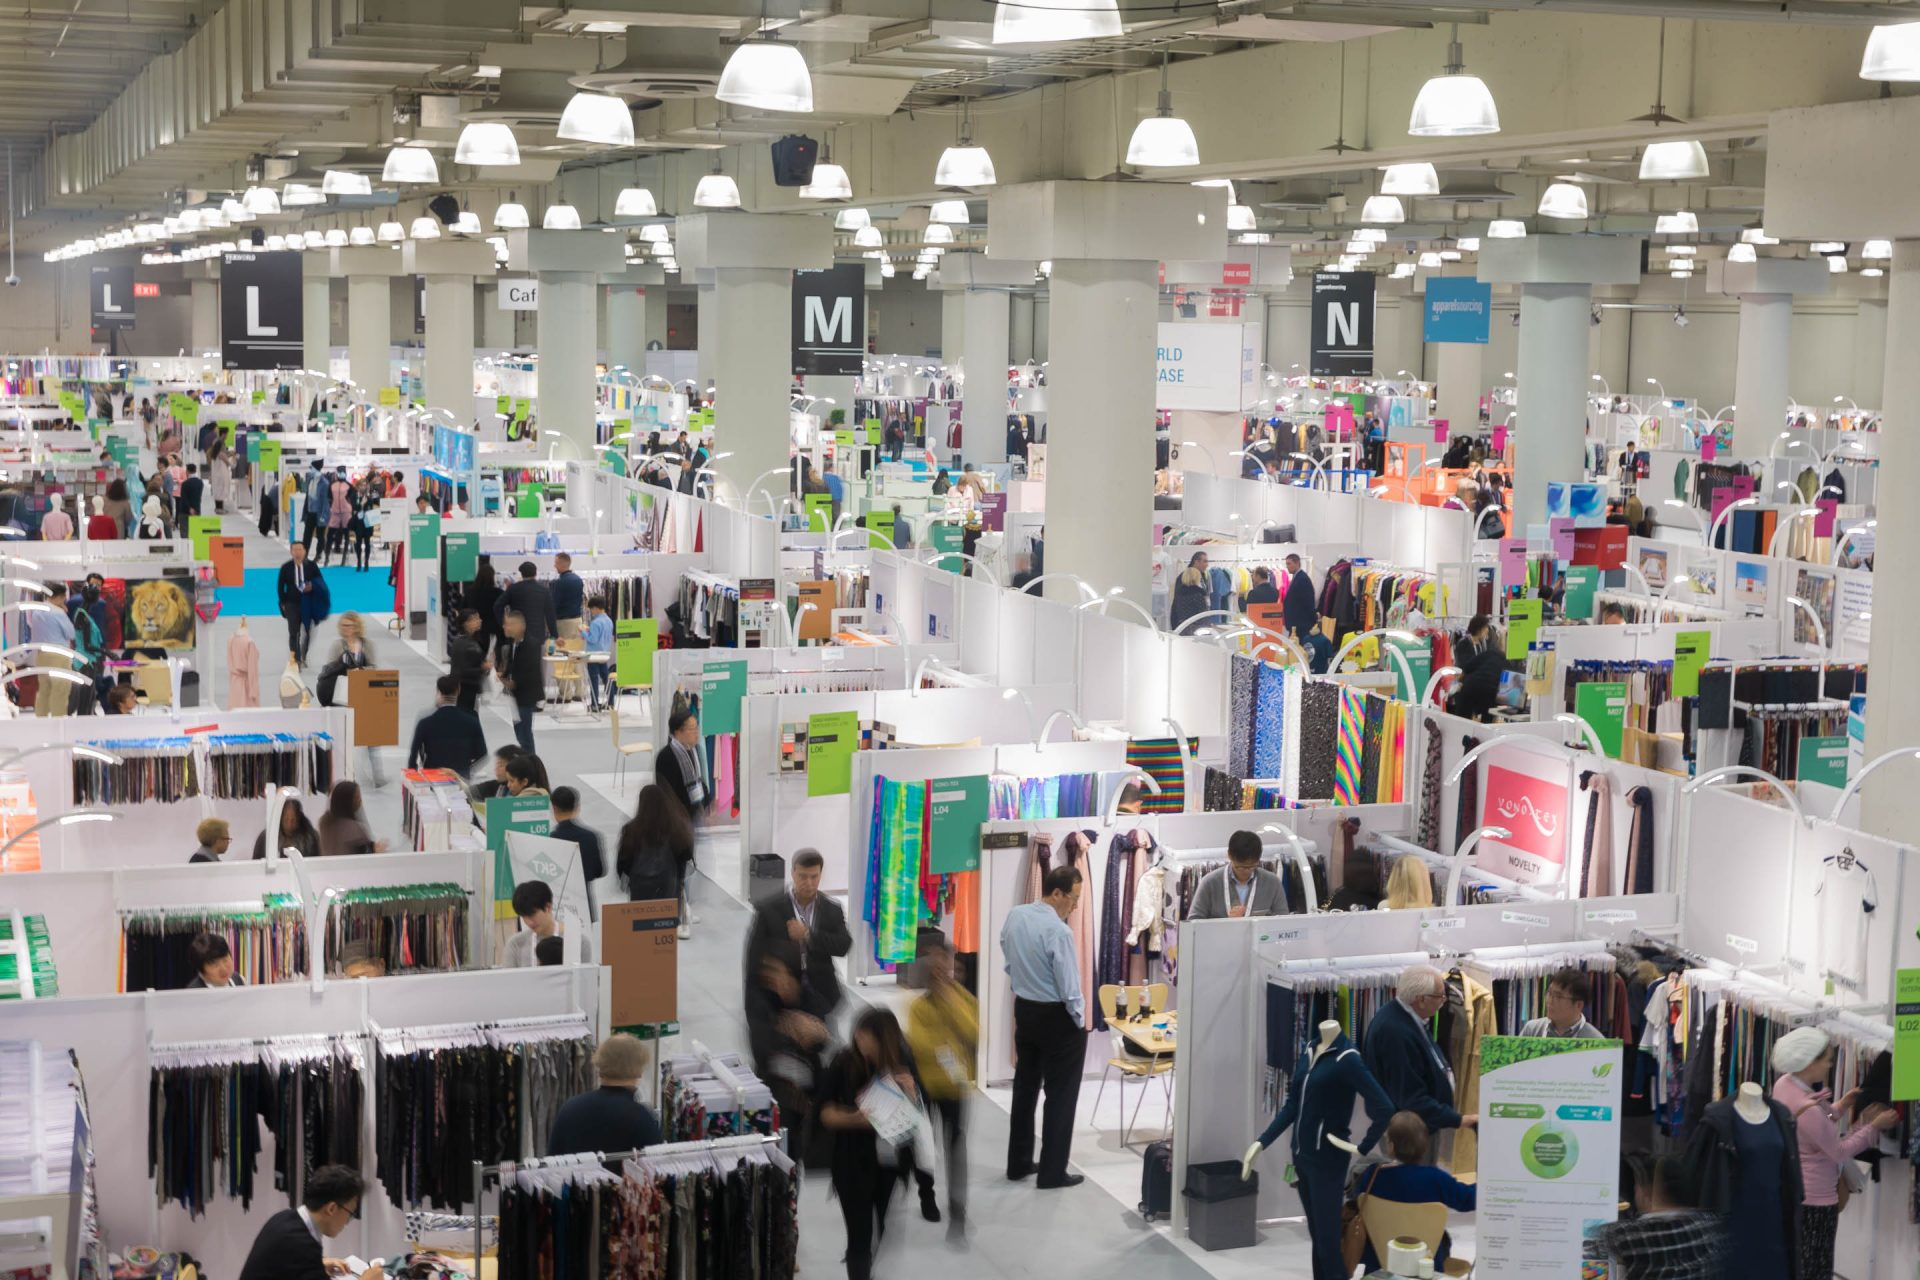 Texworld USA and Apparel Sourcing USA opened their doors to exhibitors and visitors alike on 22 January. © Messe Frankfurt/Texworld USA and Apparel Sourcing USA